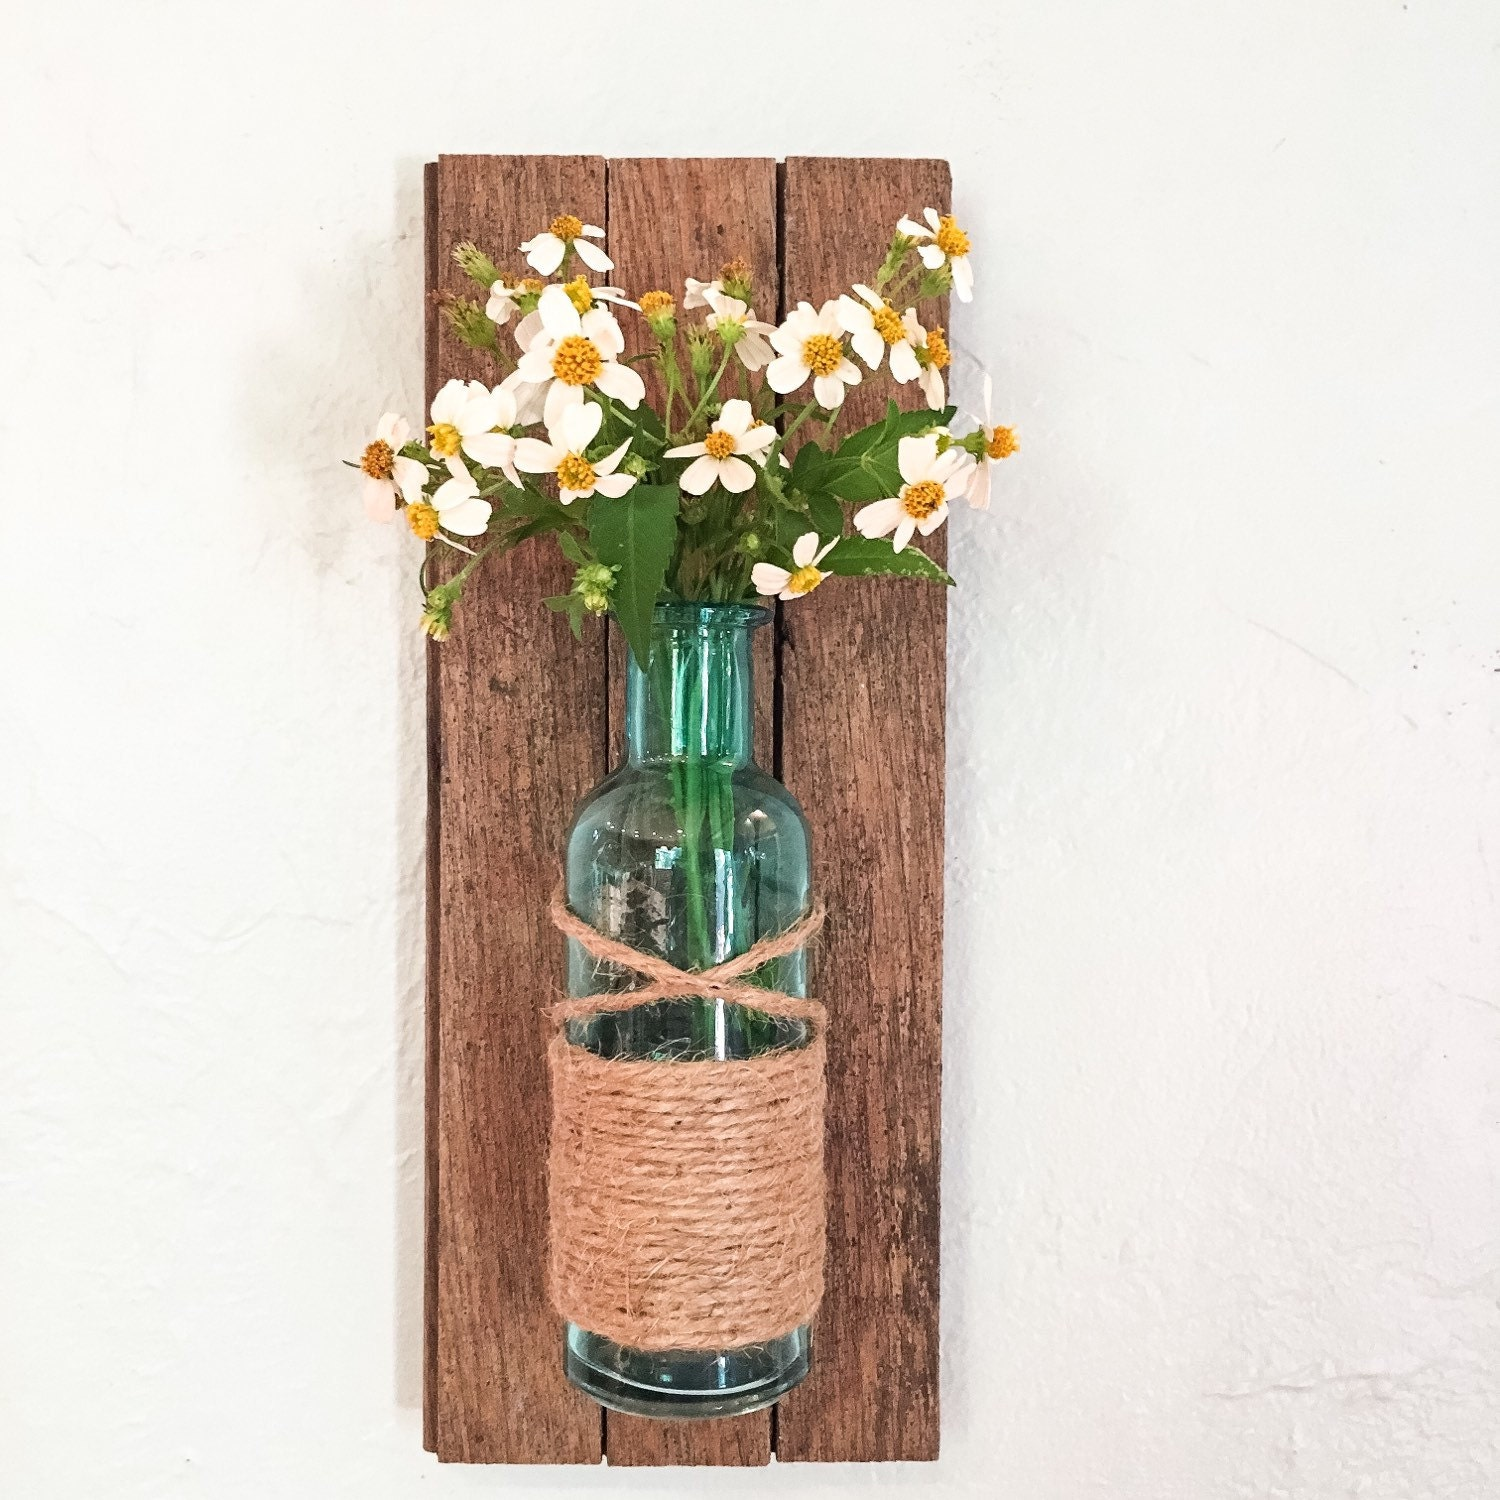 Wall Sconces With Vases : Rustic wall vase wall sconce wall flower vase by HadleyAndRuth